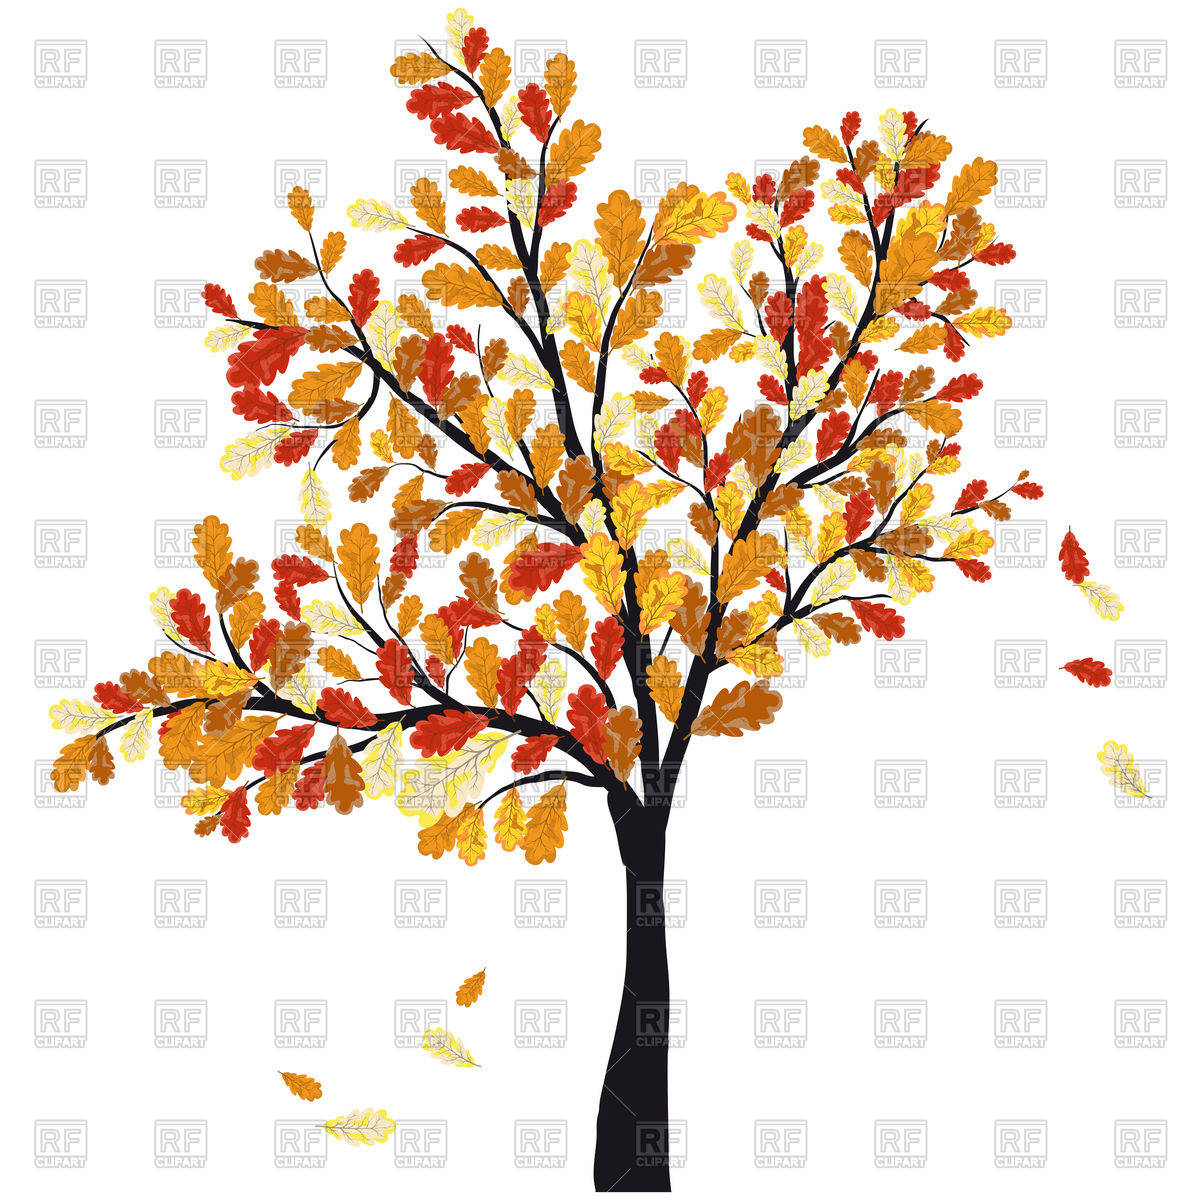 Autumn oak tree with falling leaves Vector Image #106764.